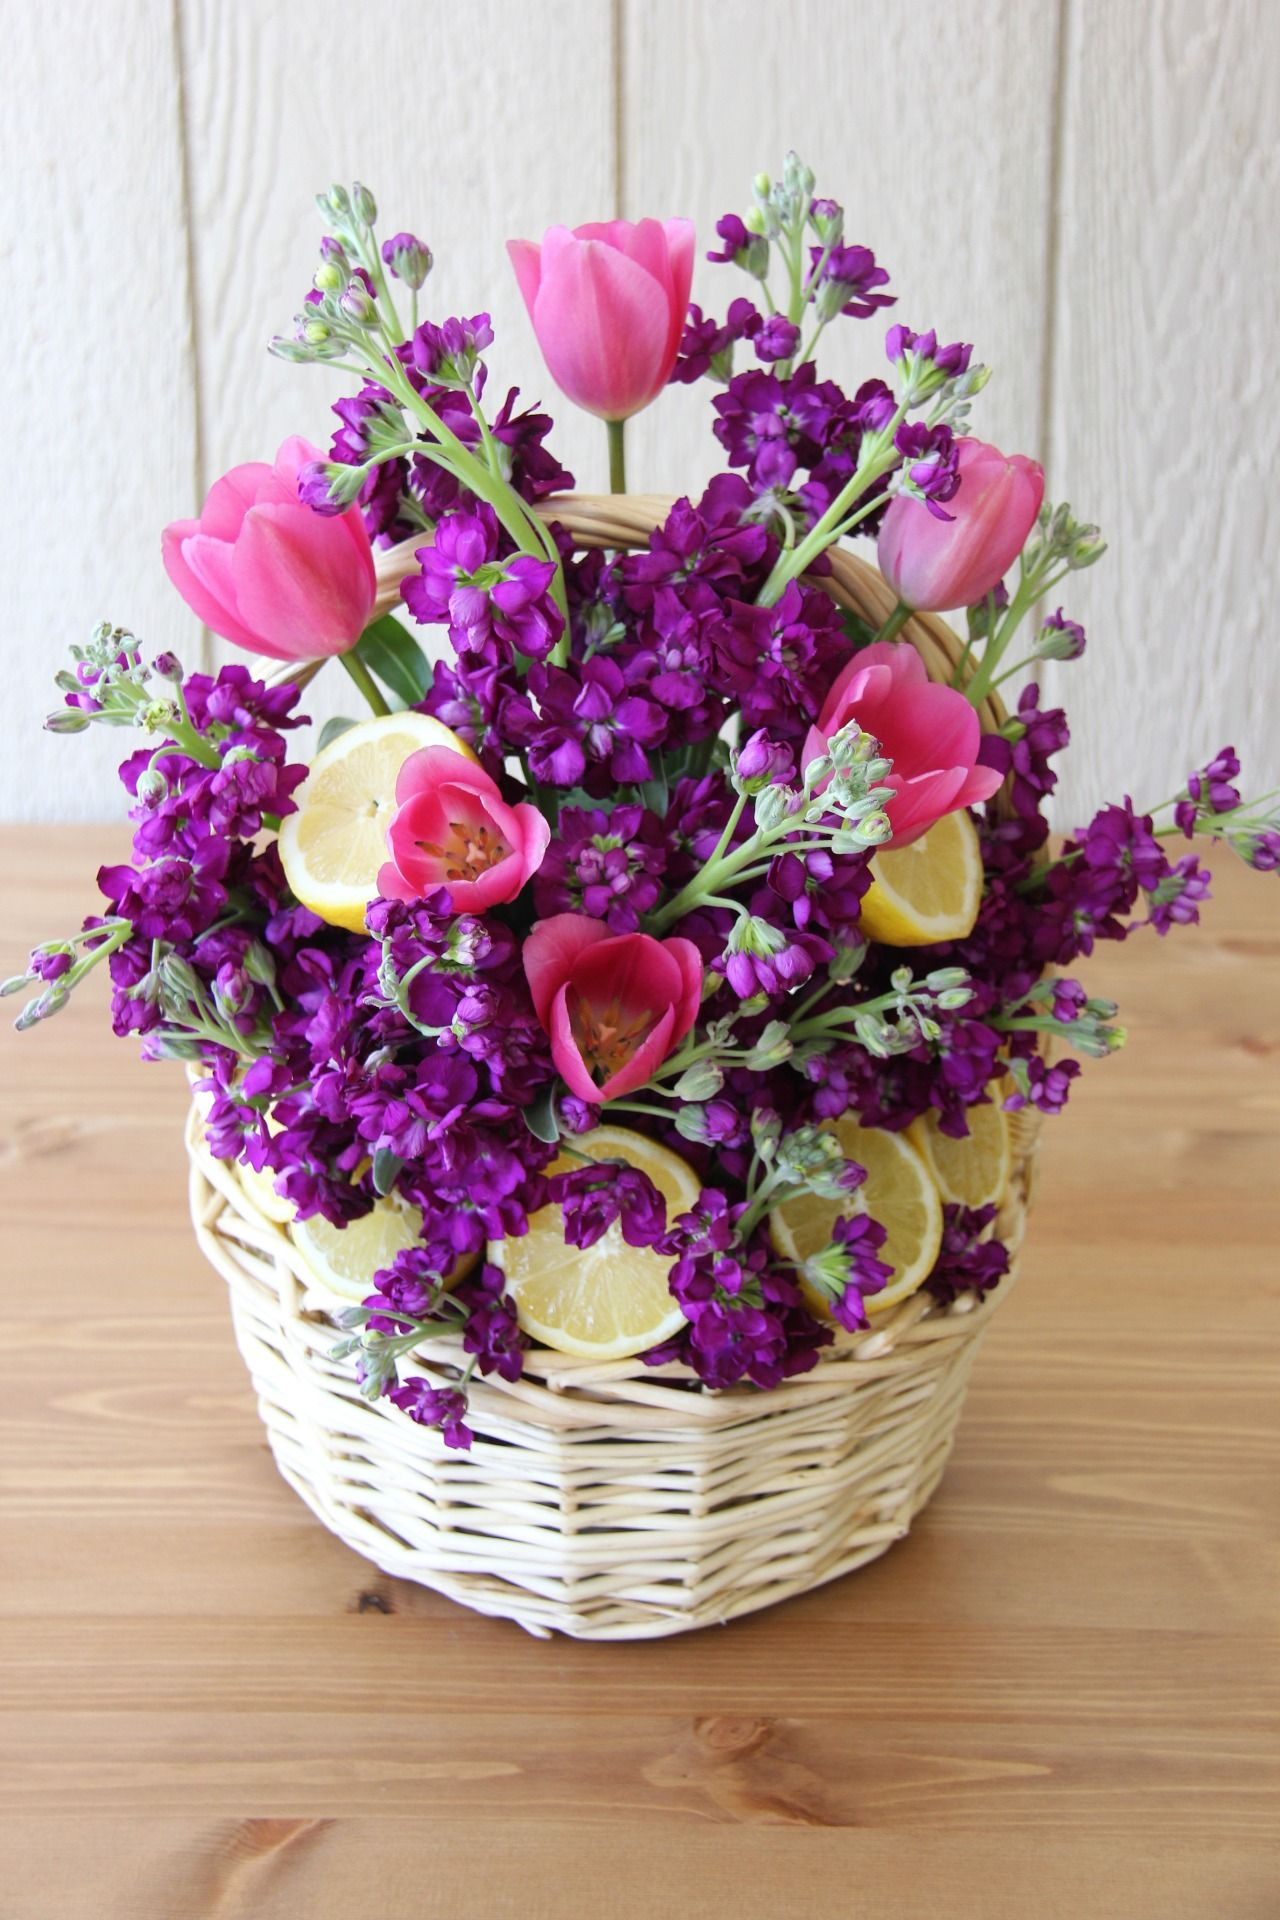 Mothers day flower basket with lemons this basket makes a beautiful mothers day flower basket with lemons this basket makes a beautiful centerpiece for mothers day brunch it combines deep pink and purple flowers with izmirmasajfo